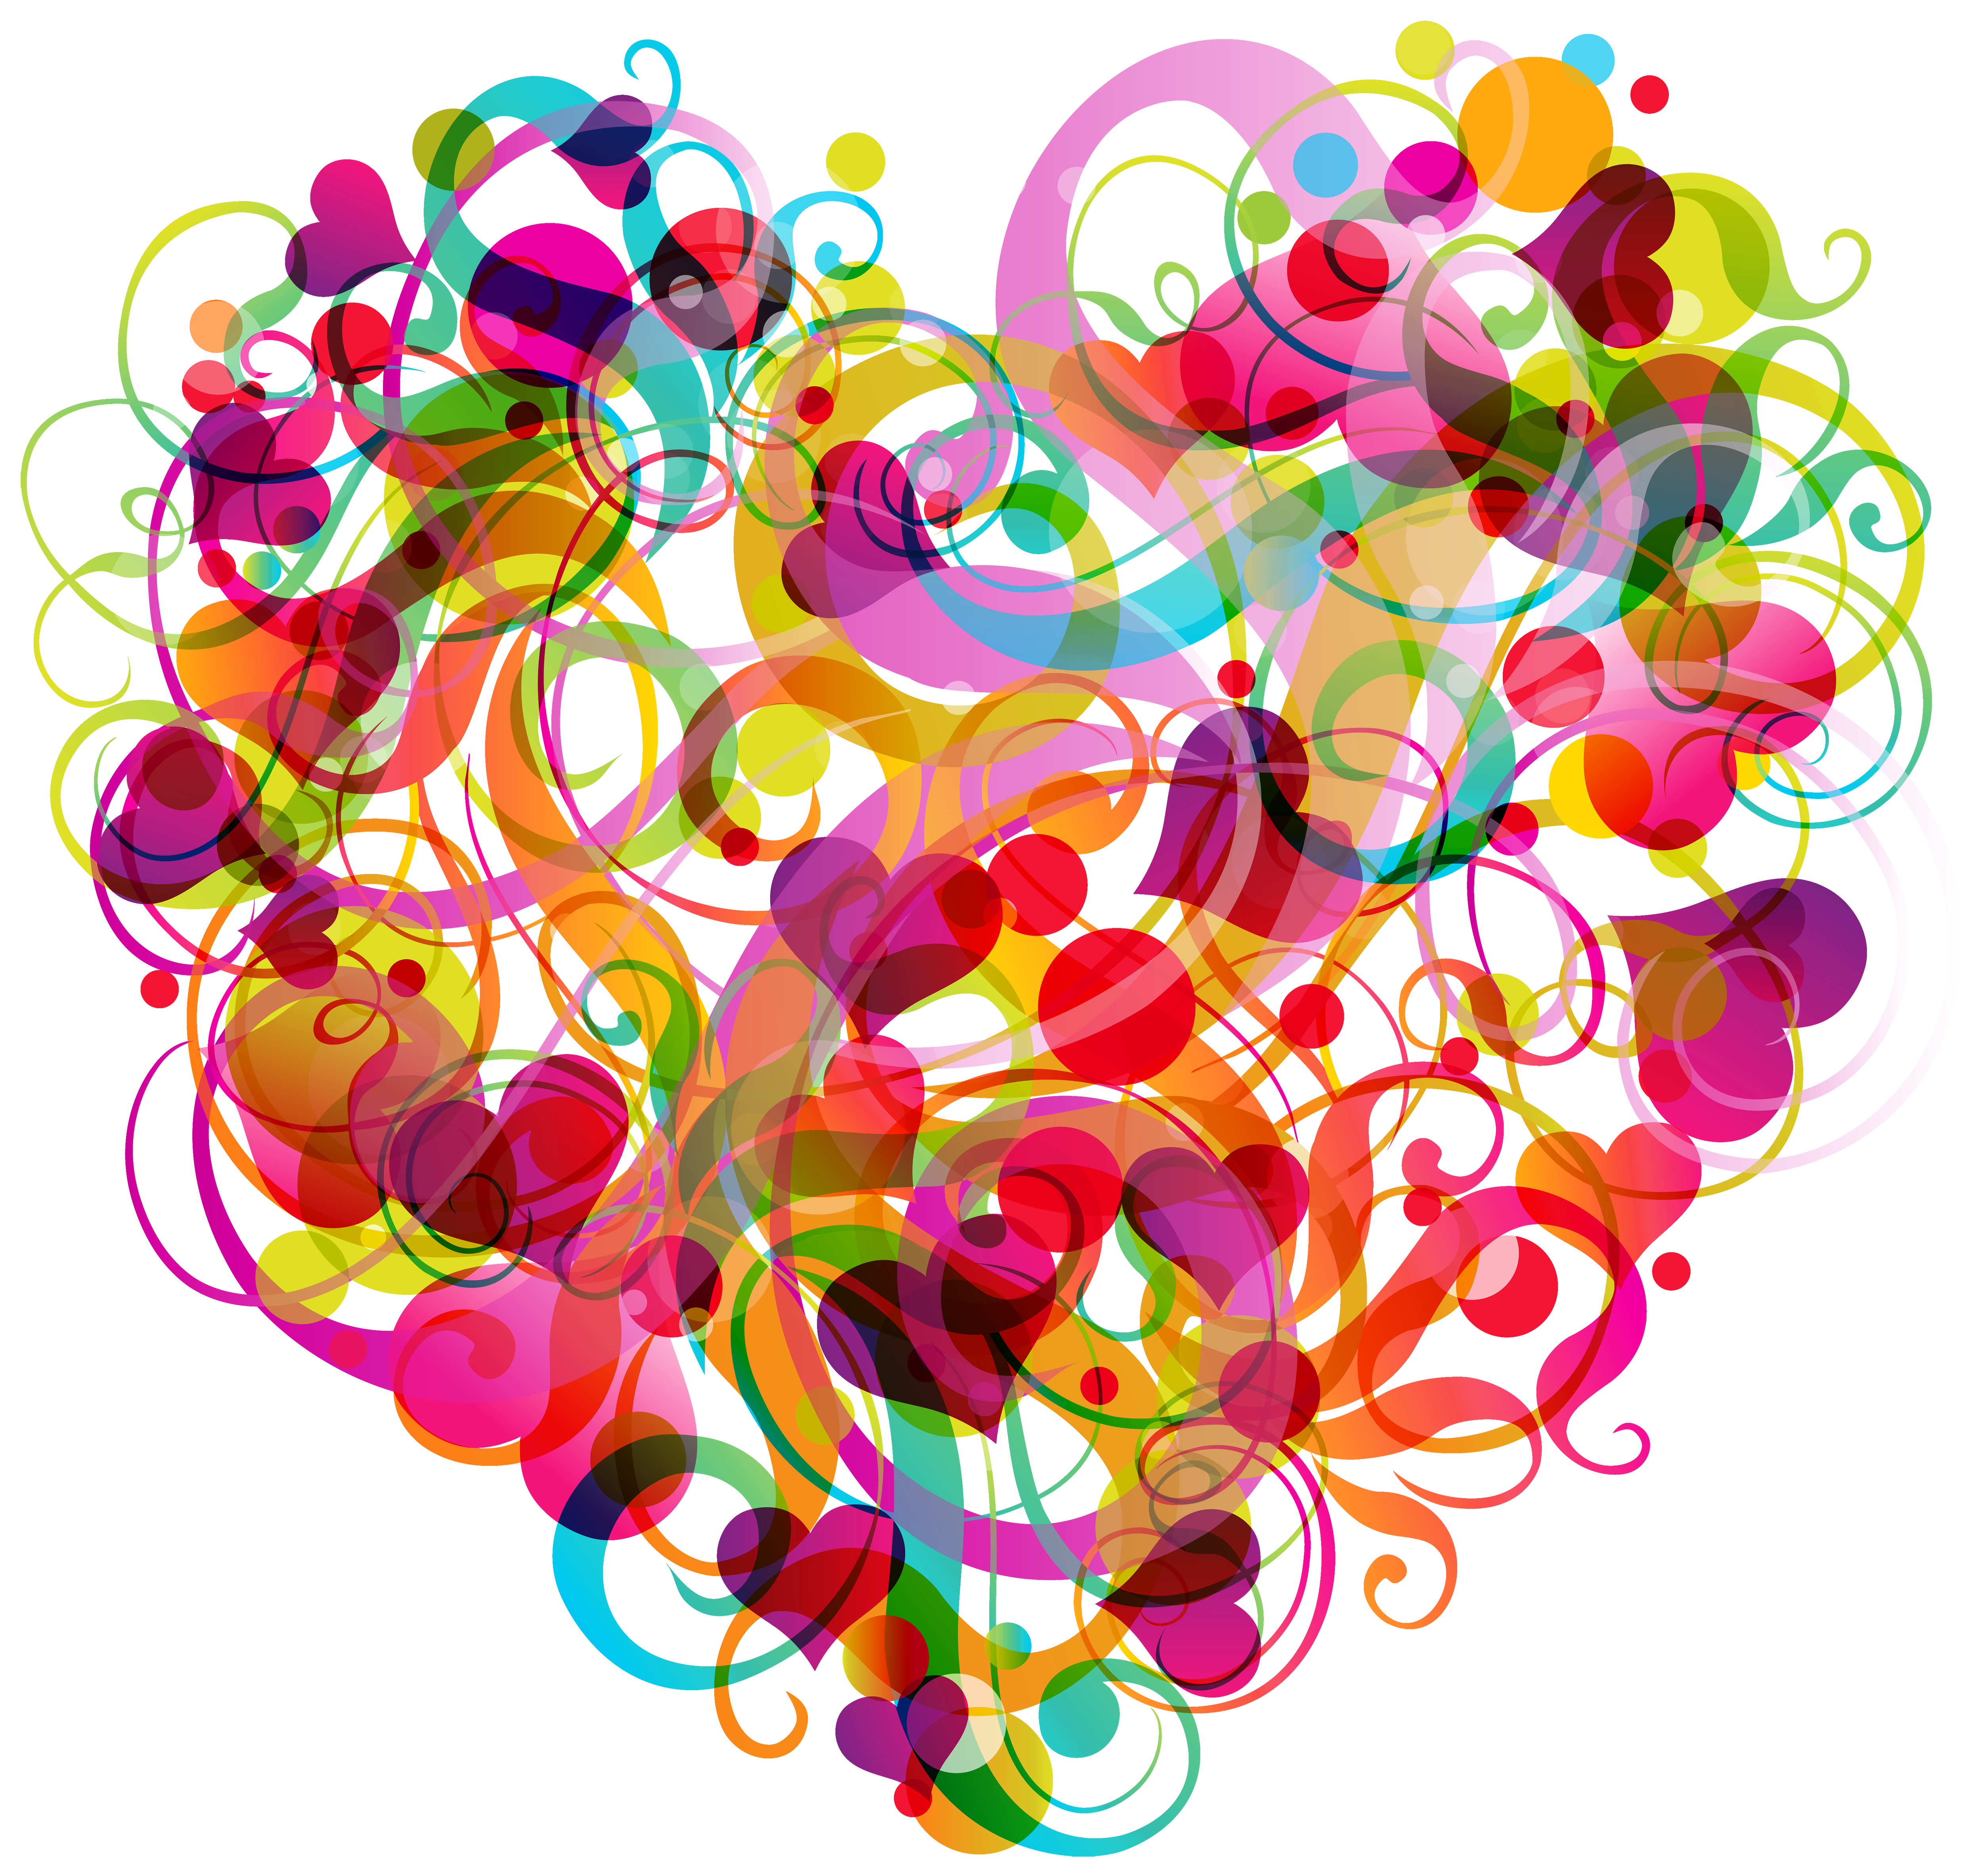 Abstract heart png. Colorful clipart best web